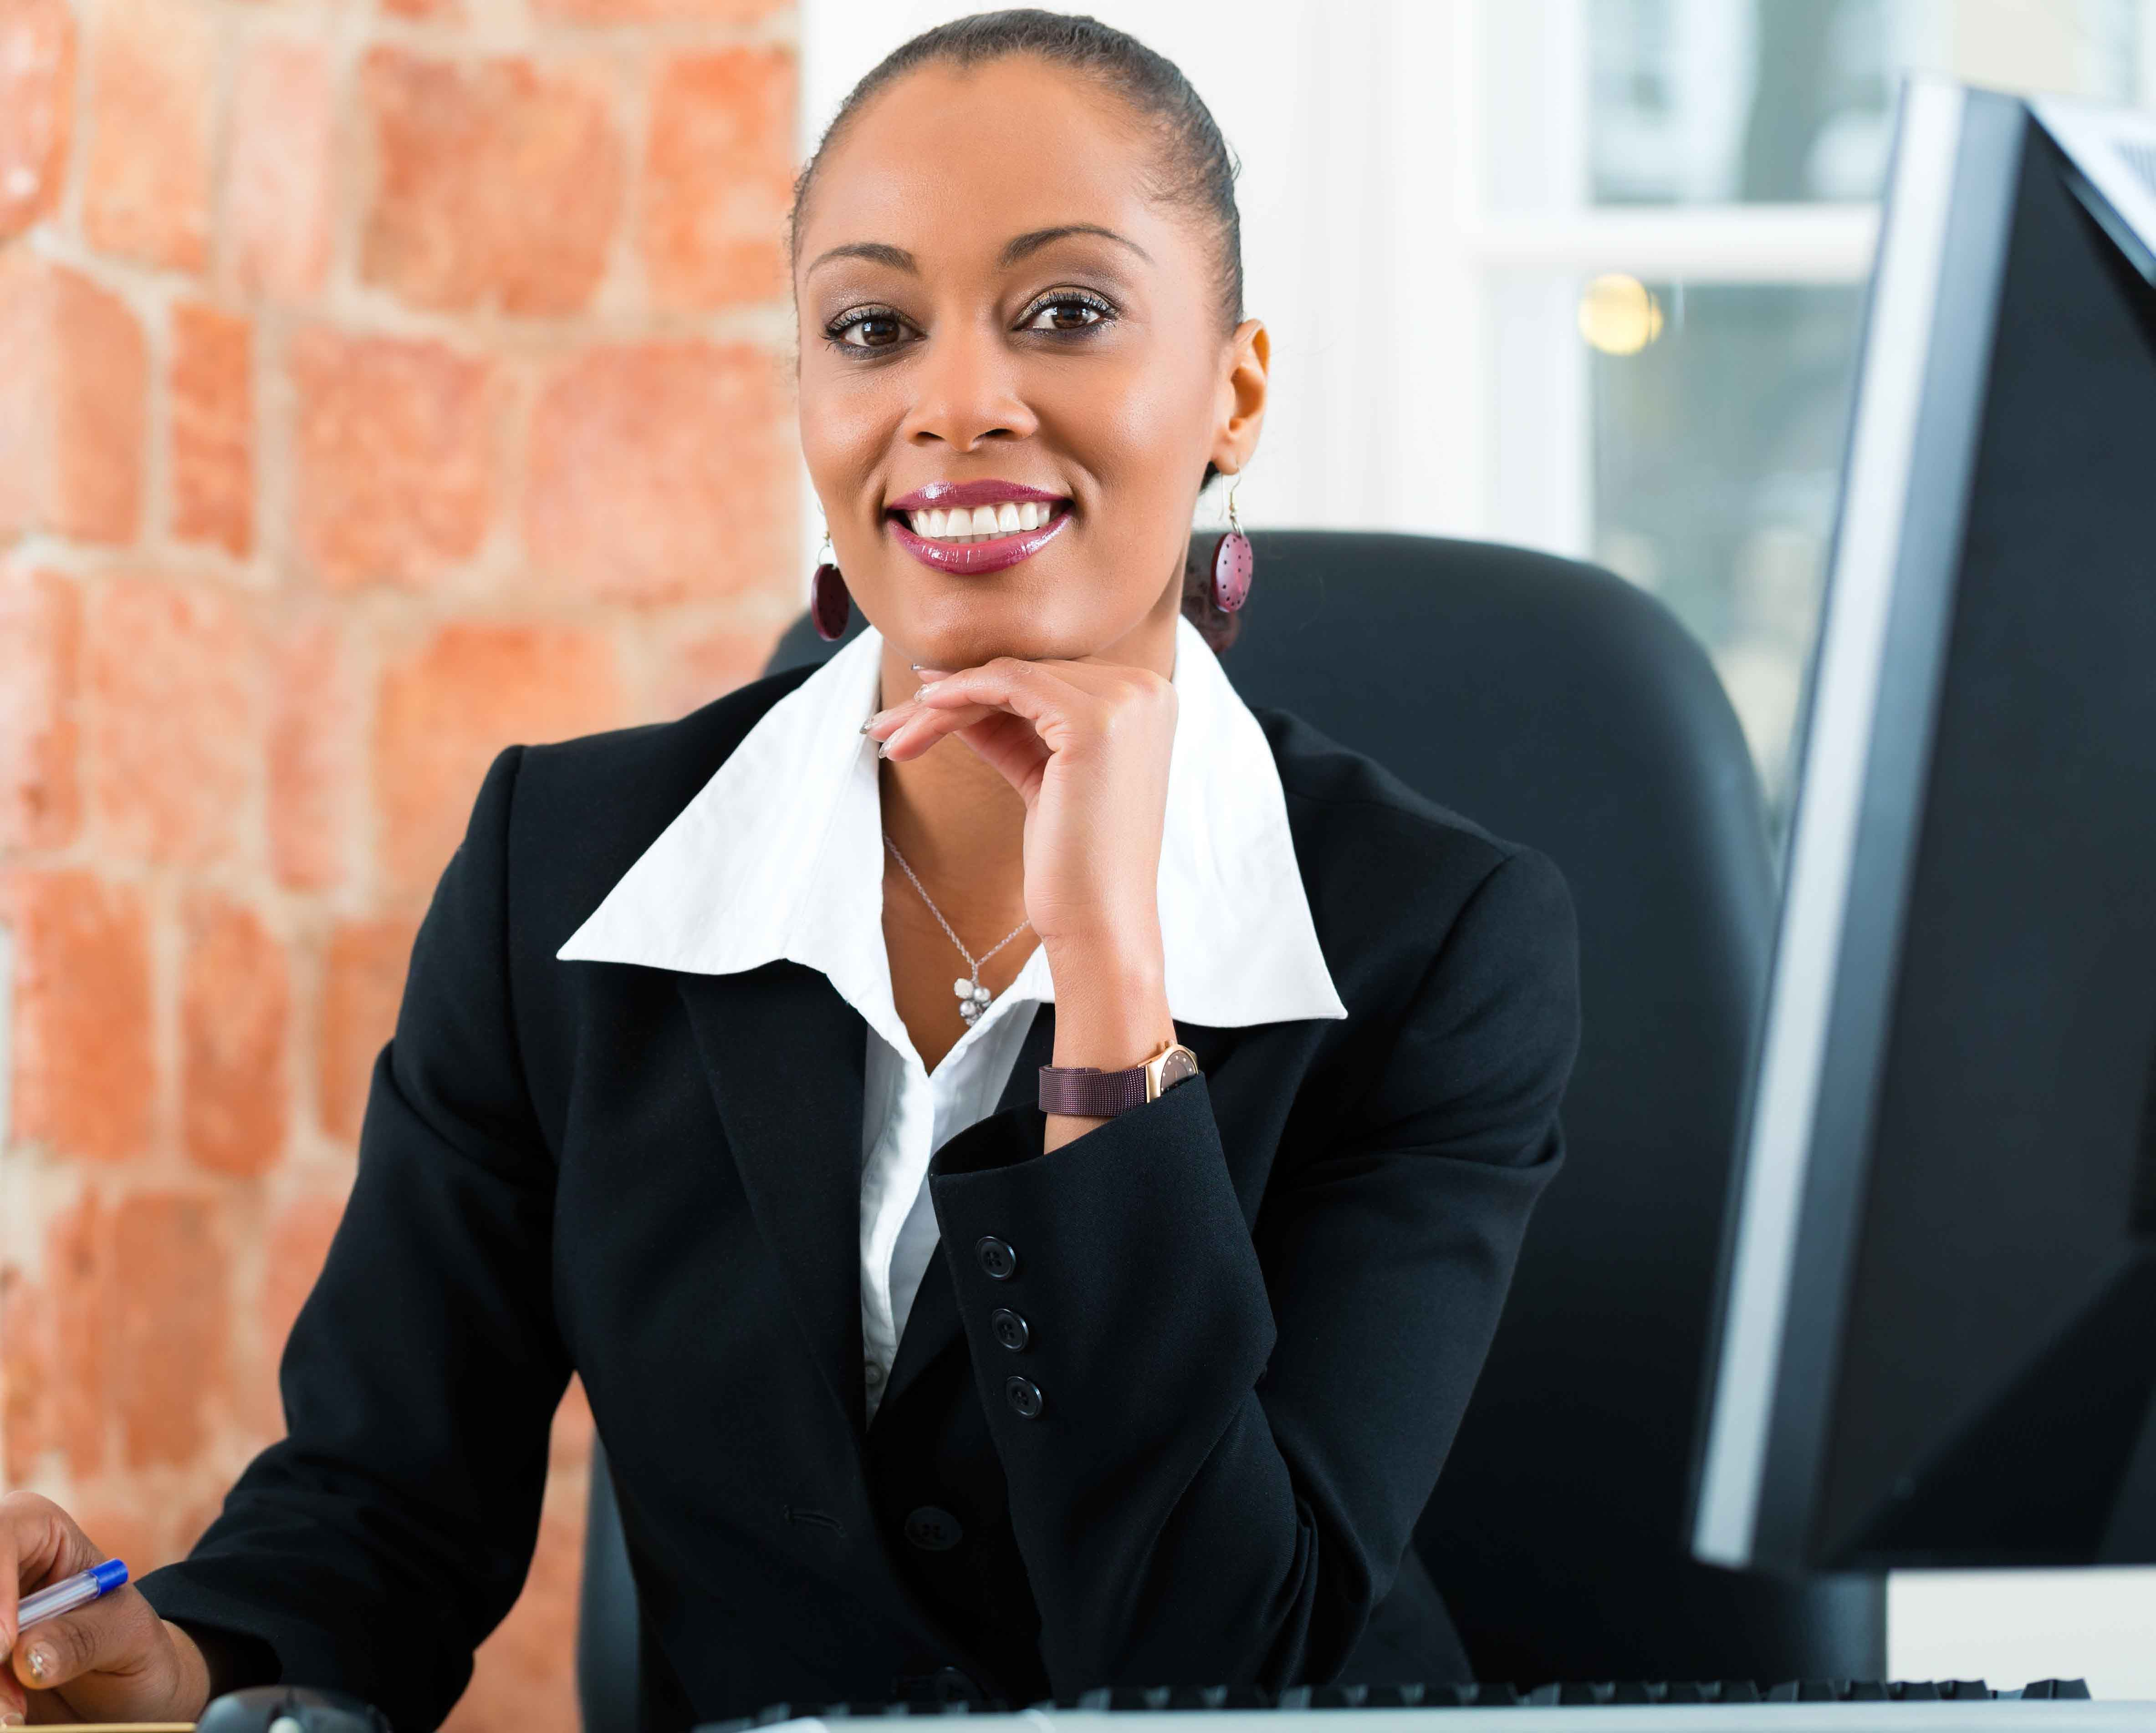 Paralegal working at her desk